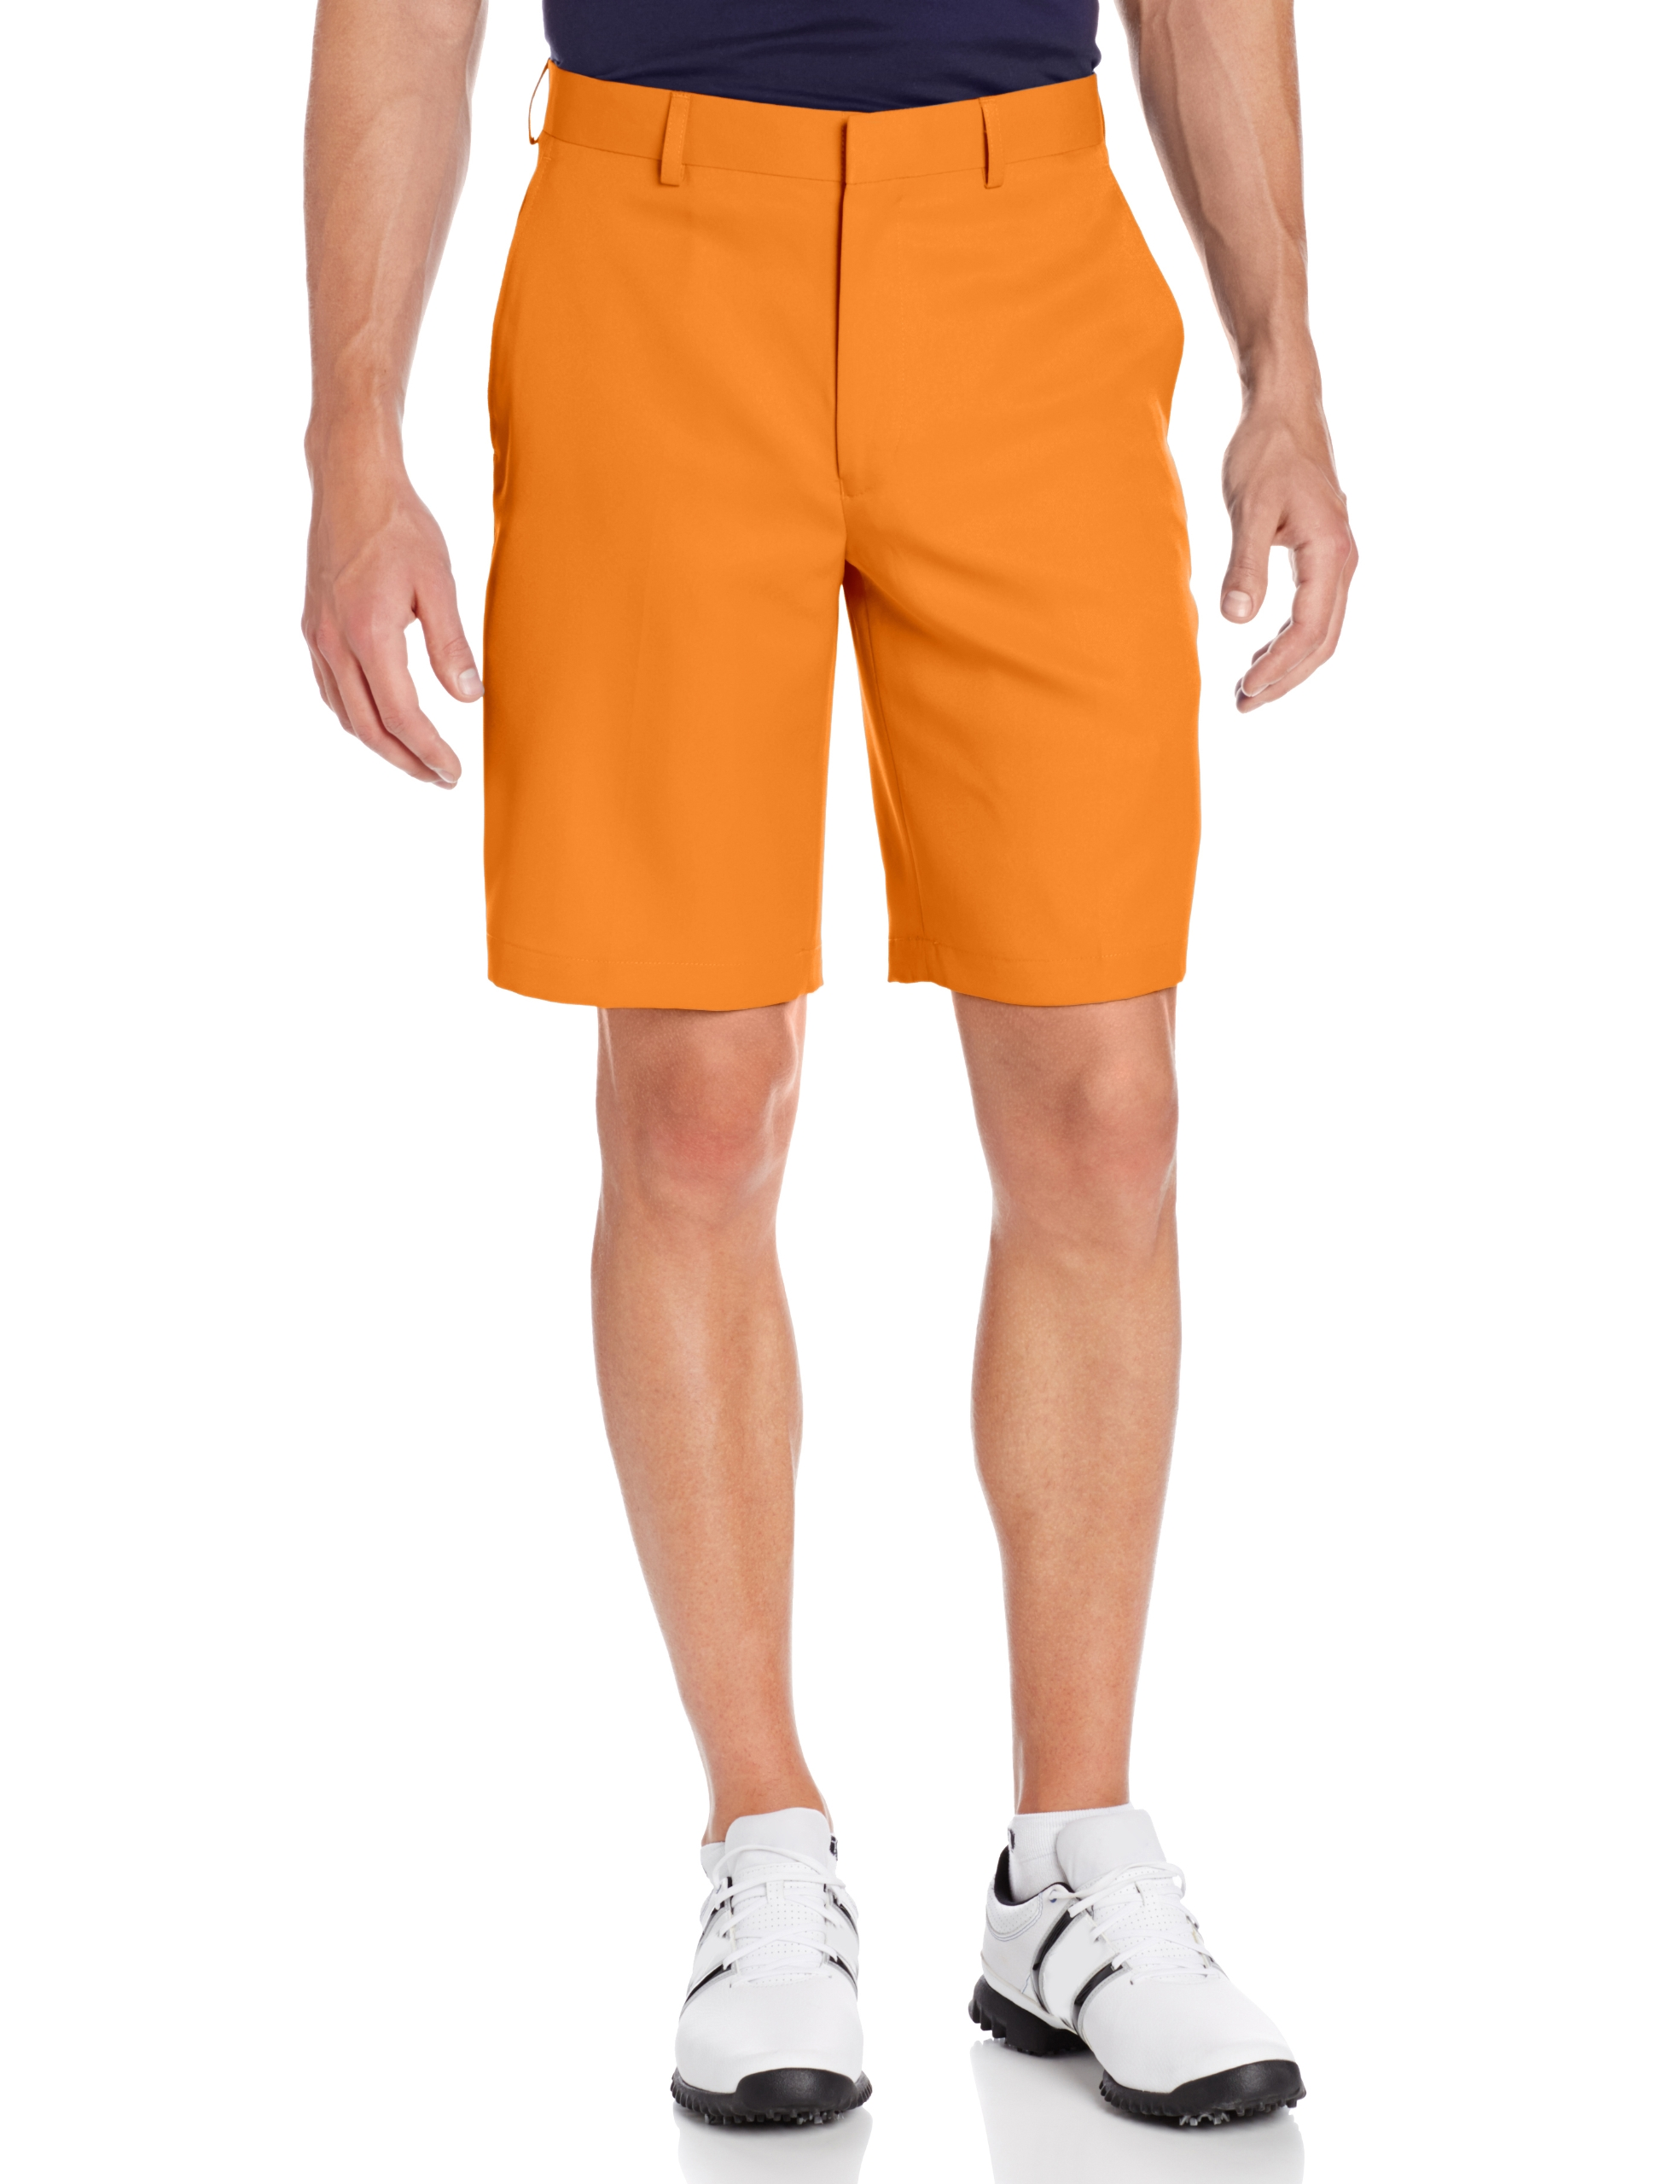 Louis Raphael Men's Flat Front Golf Short, Persimmon Orange, 30